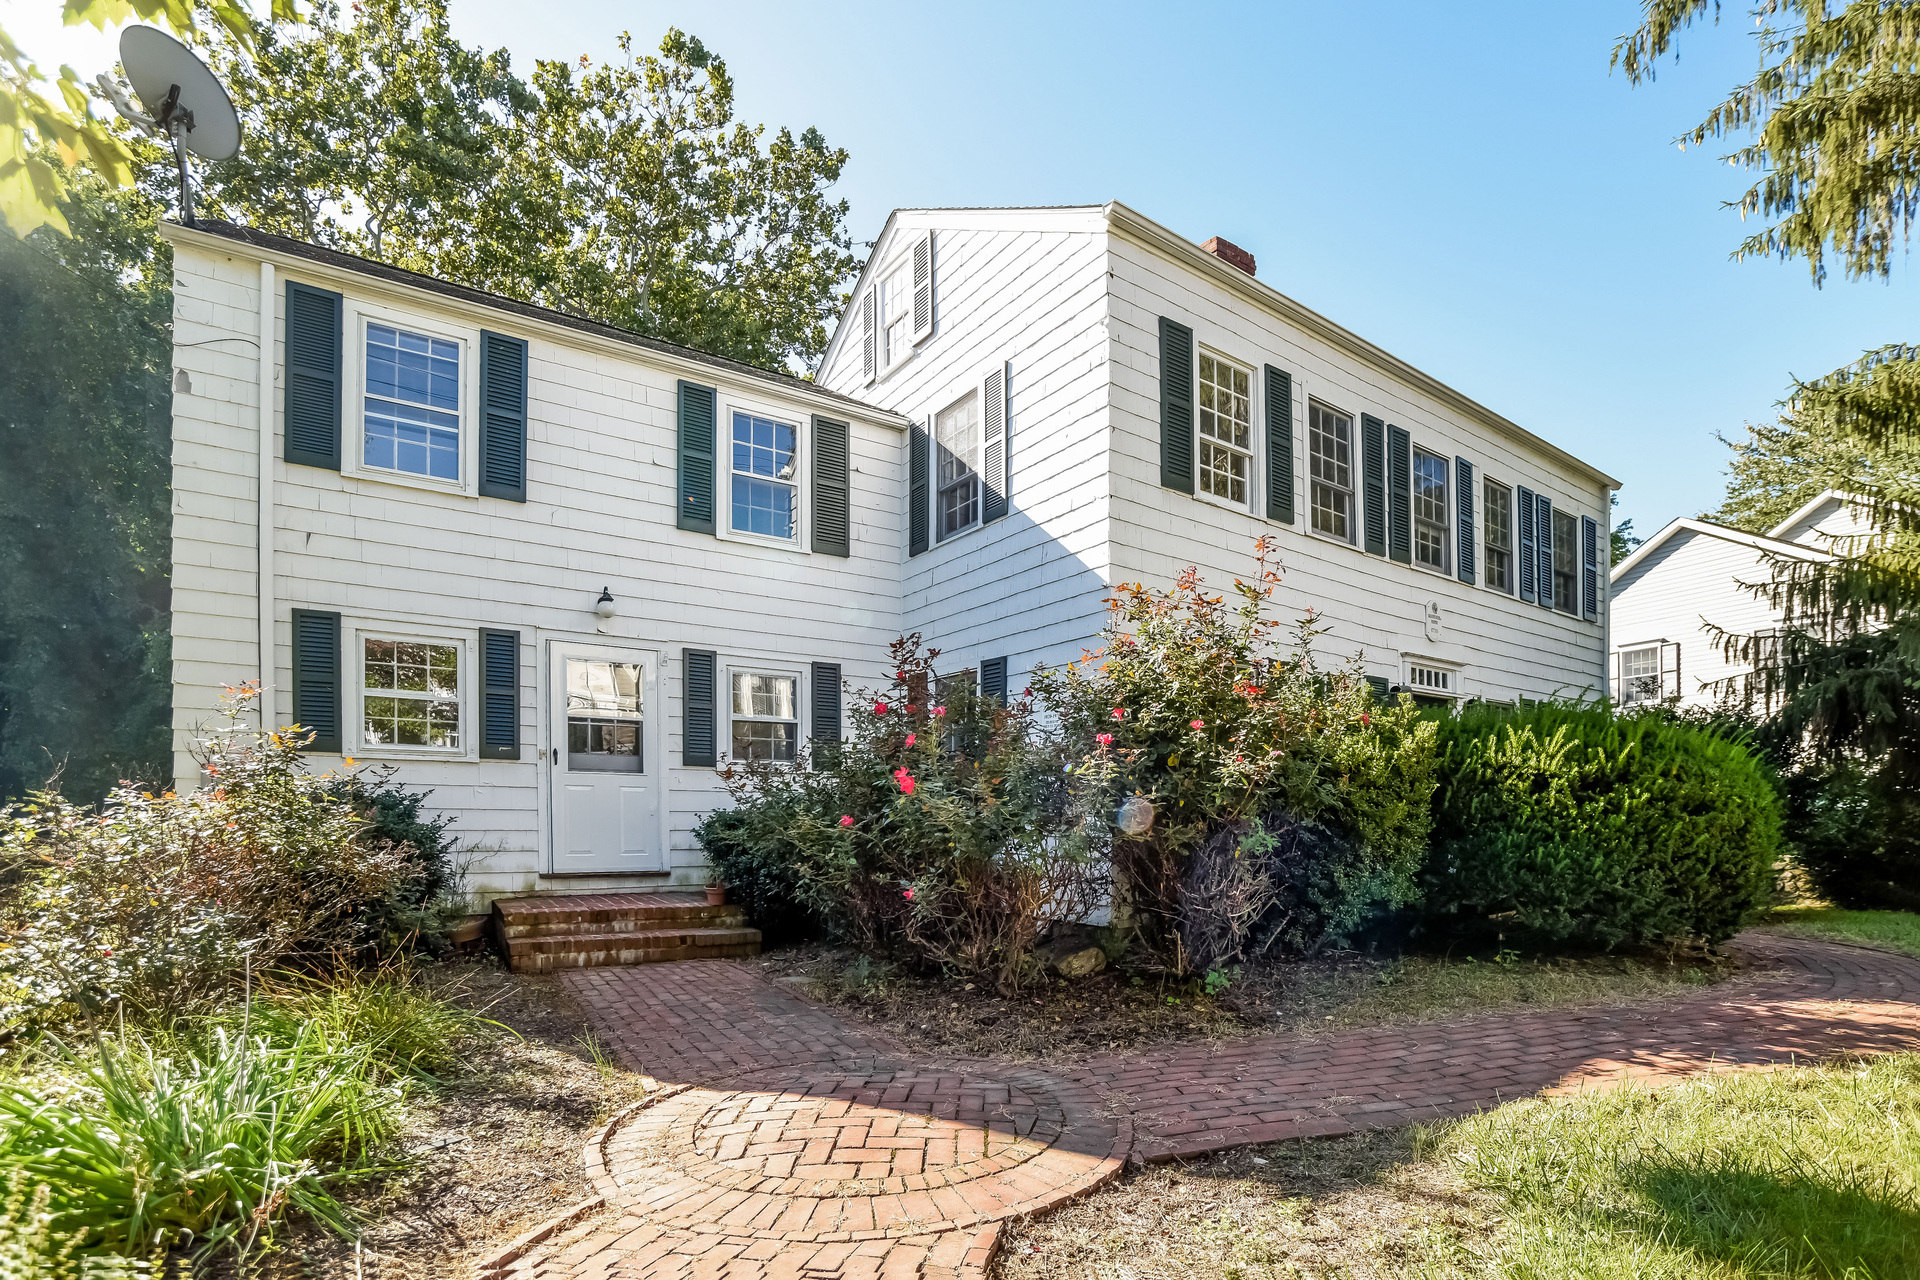 Single Family Home for Sale at 25 Brookside Rd Darien, Connecticut, 06820 United States